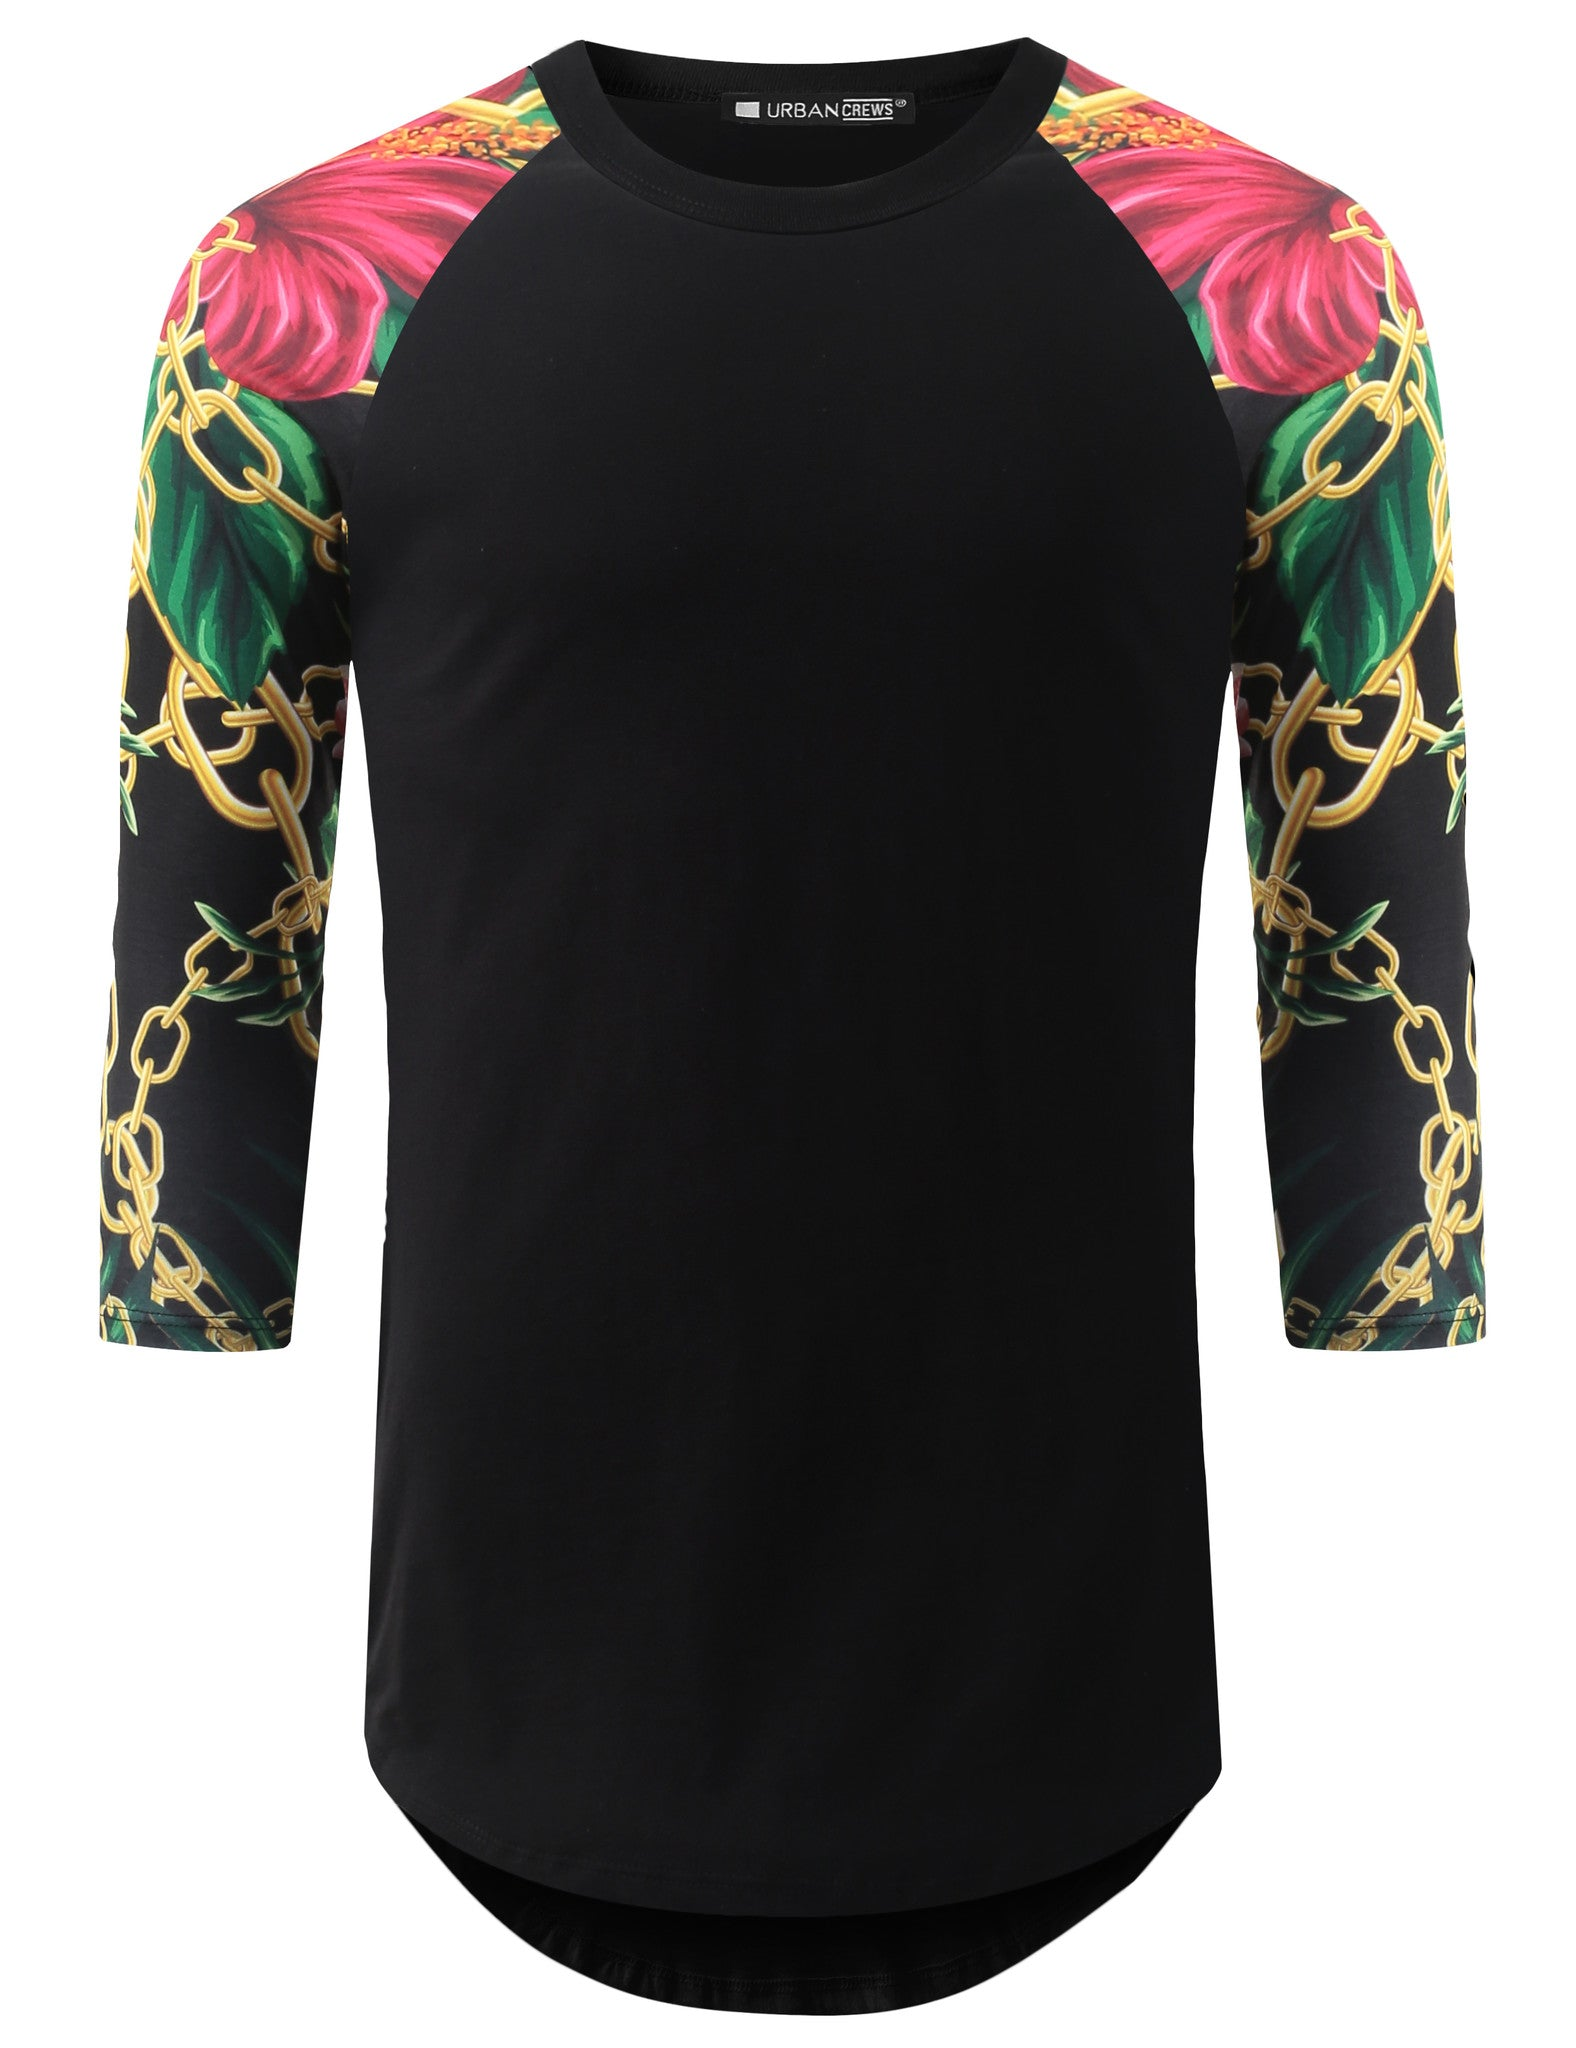 BLACK 3/4 Sleeve Floral Chain Longline Raglan Baseball Shirt- URBANCREWS